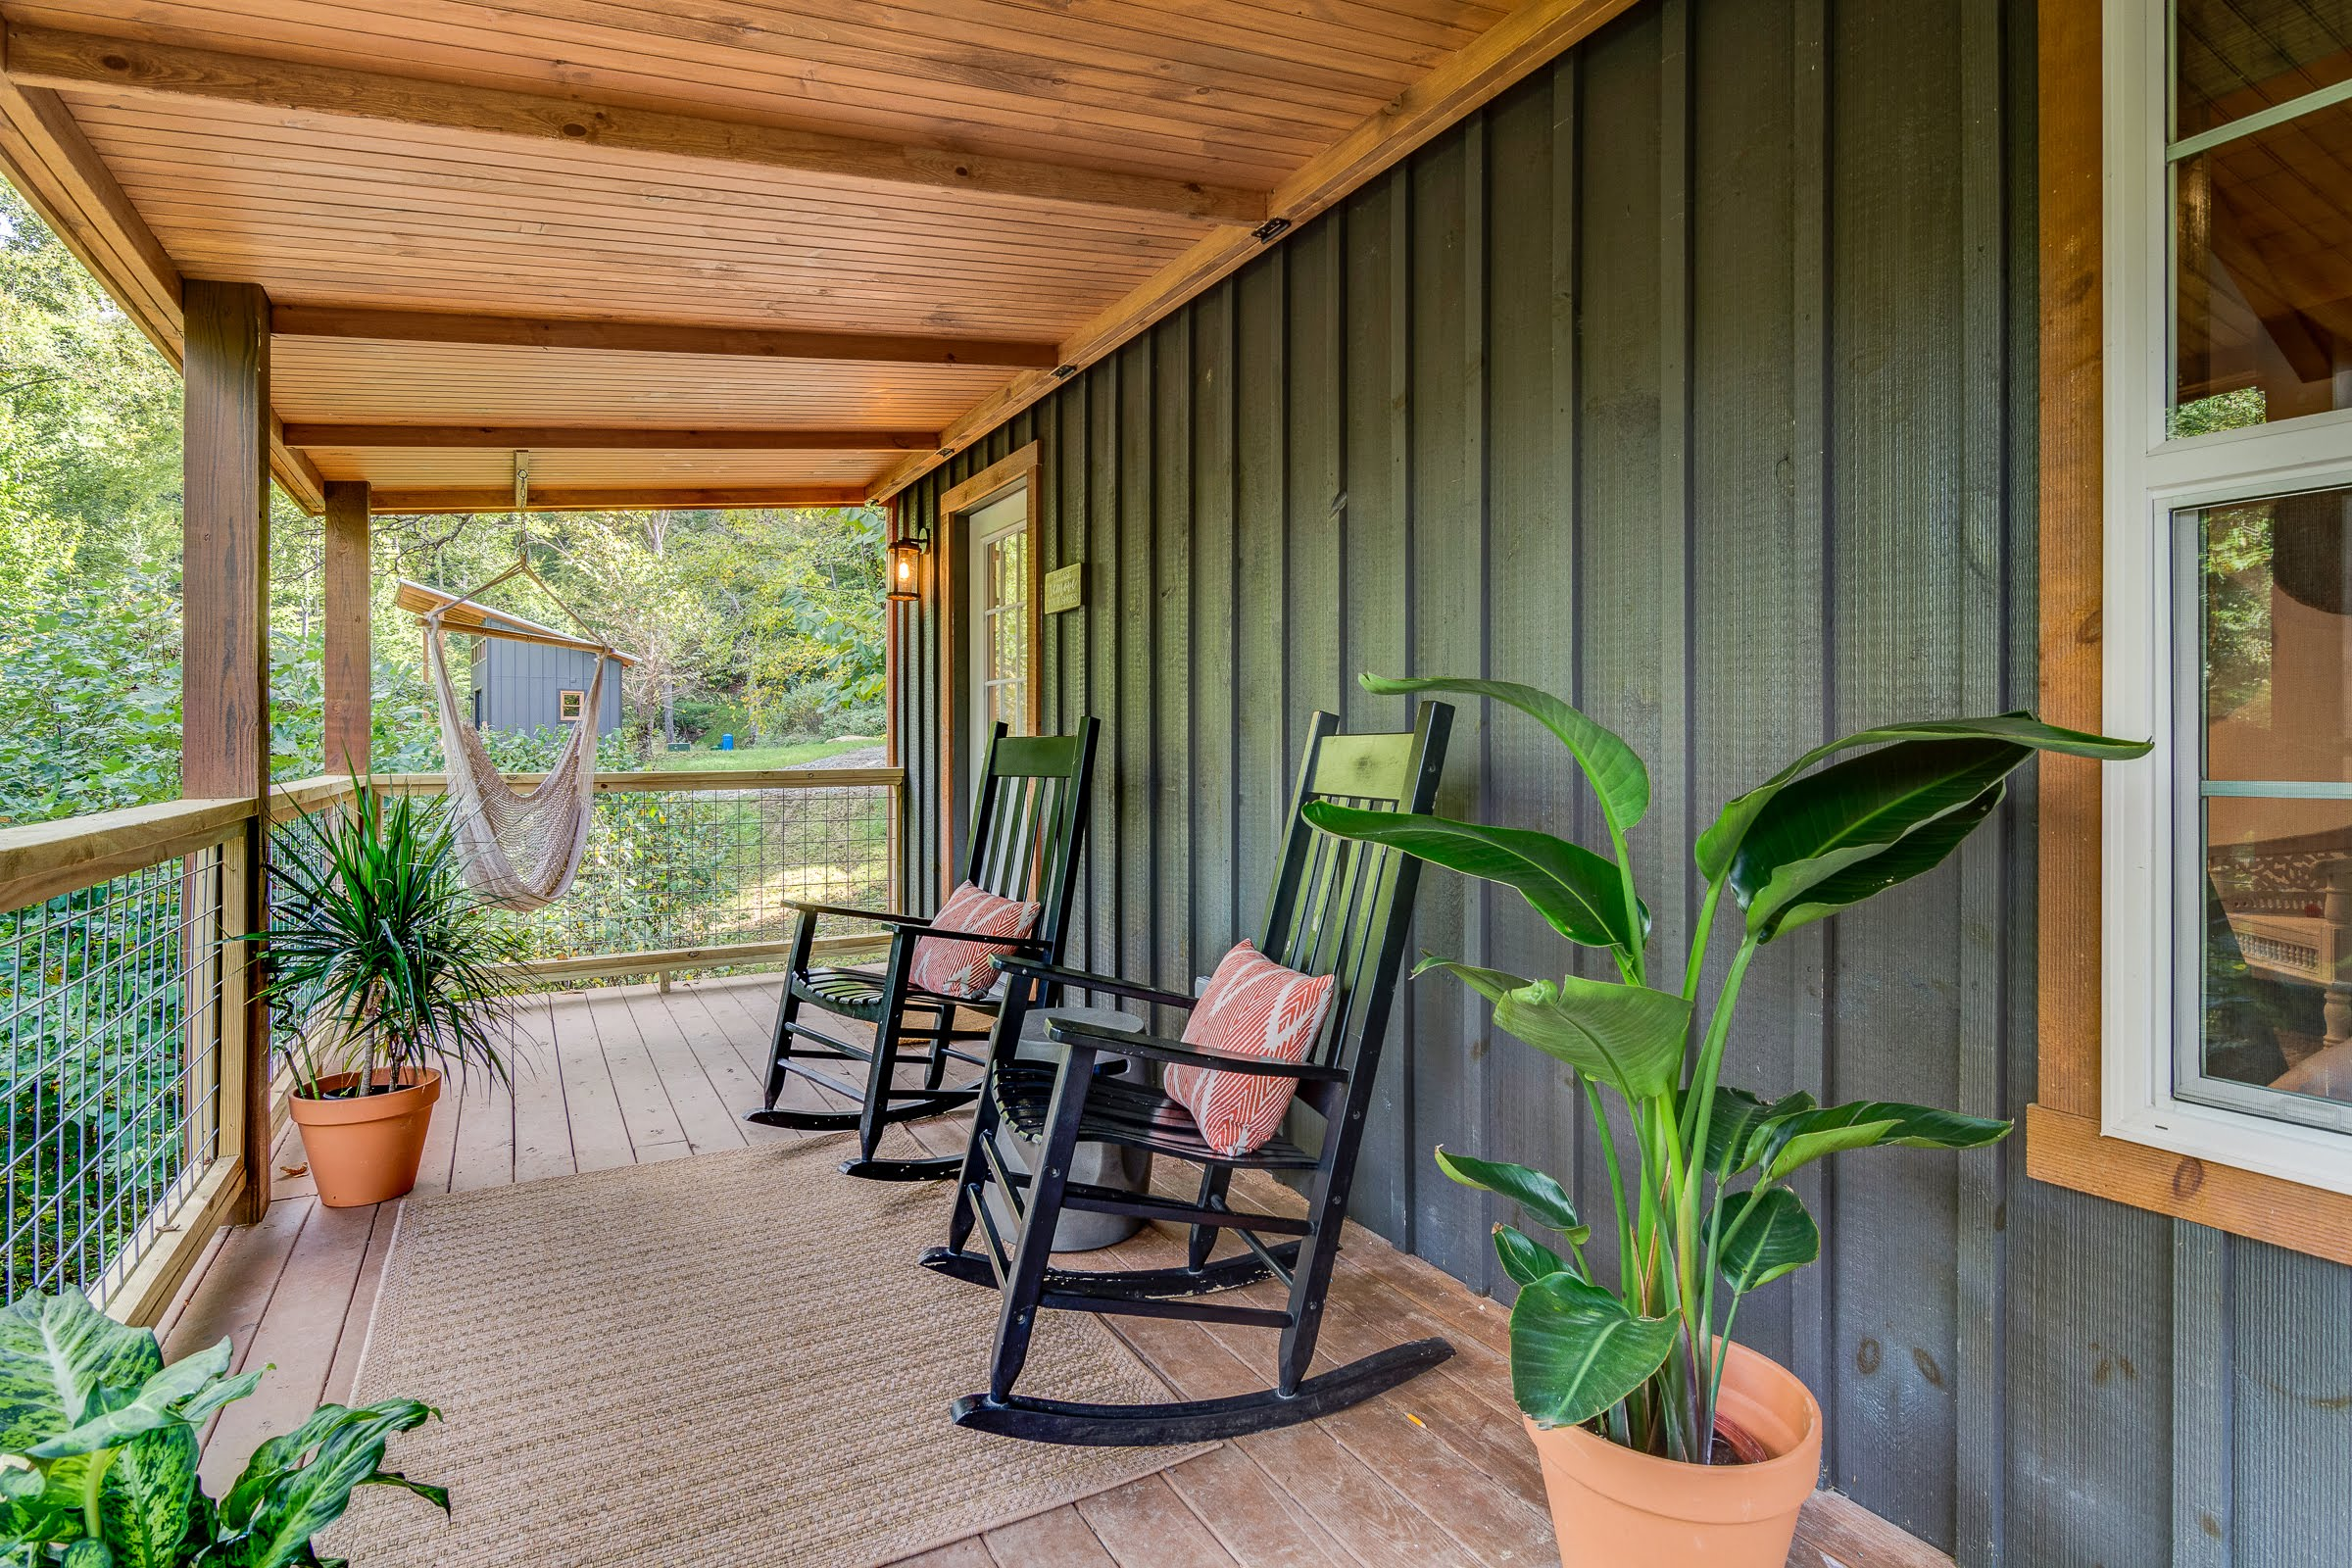 Recovery Sober Wellness Retreat Cabins